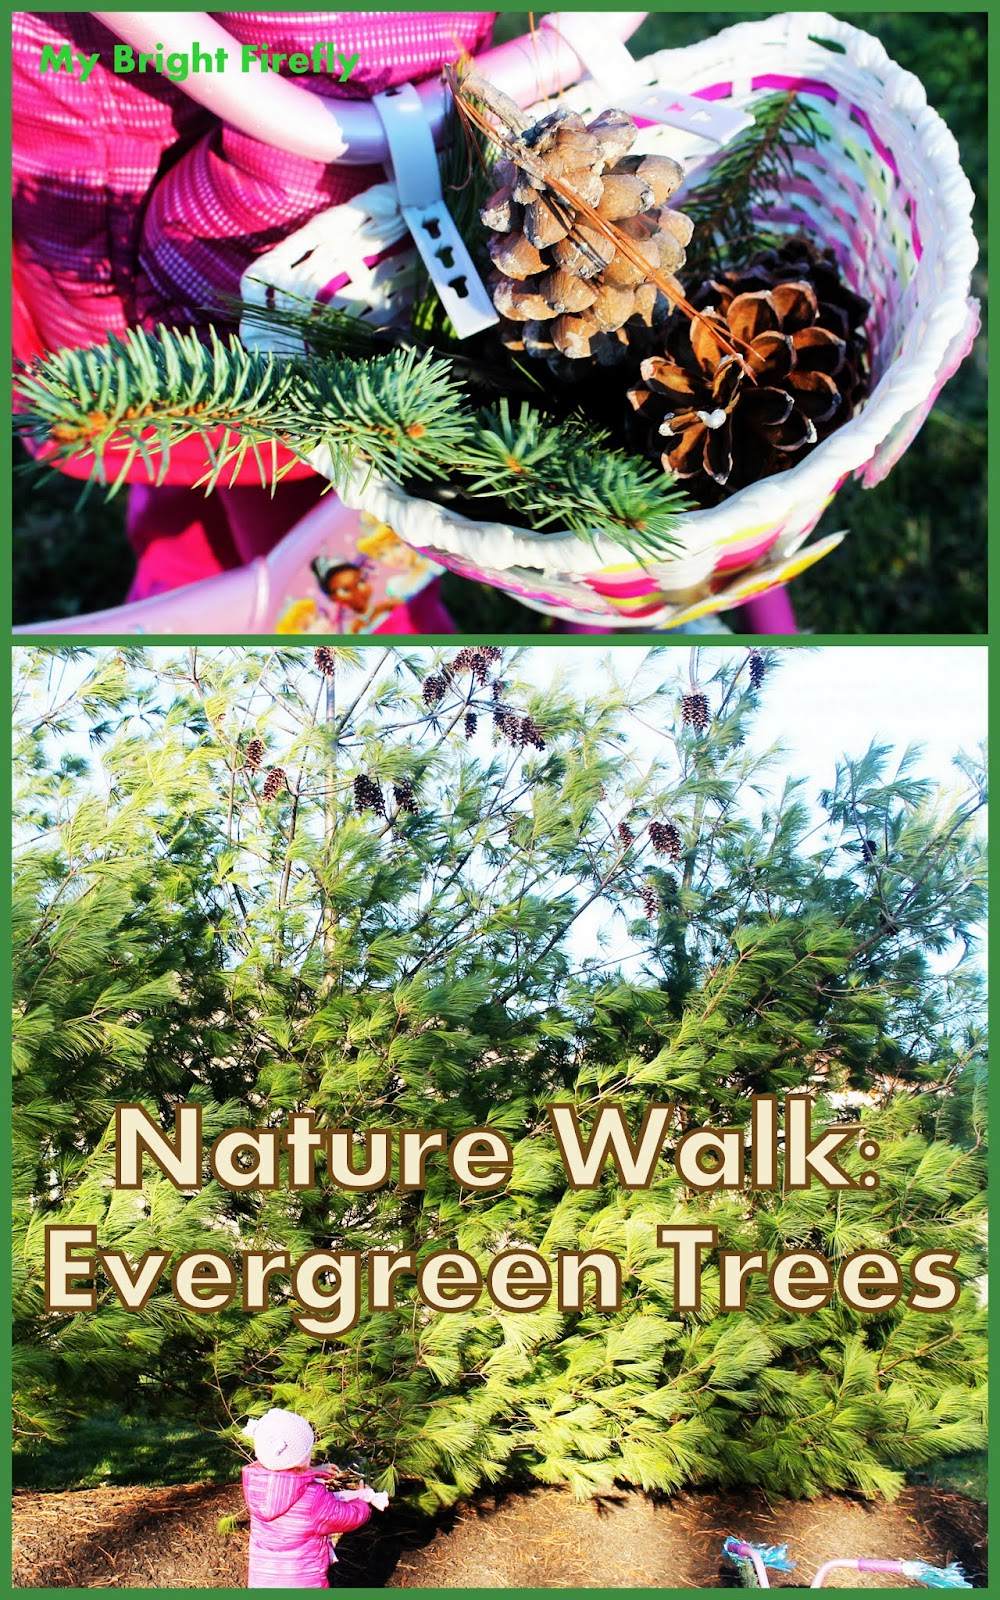 my bright firefly evergreen trees nature walk activities for kids